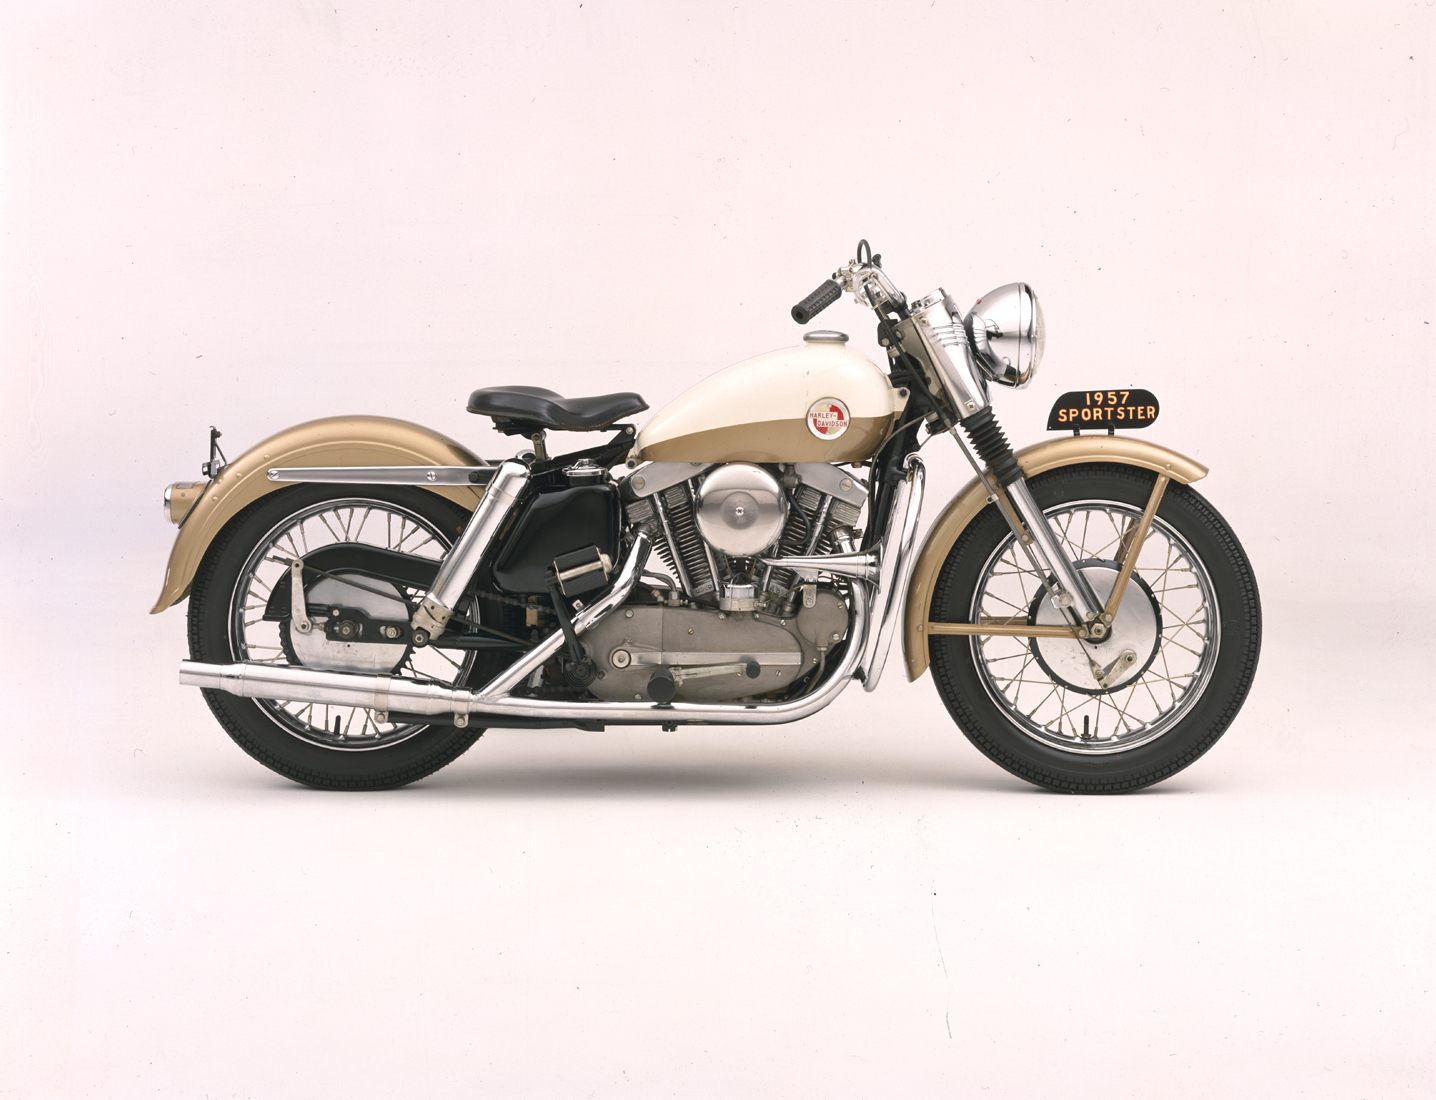 The debut of Sportster in 1957 came with an all new engine and is credited with being the first Superbike.